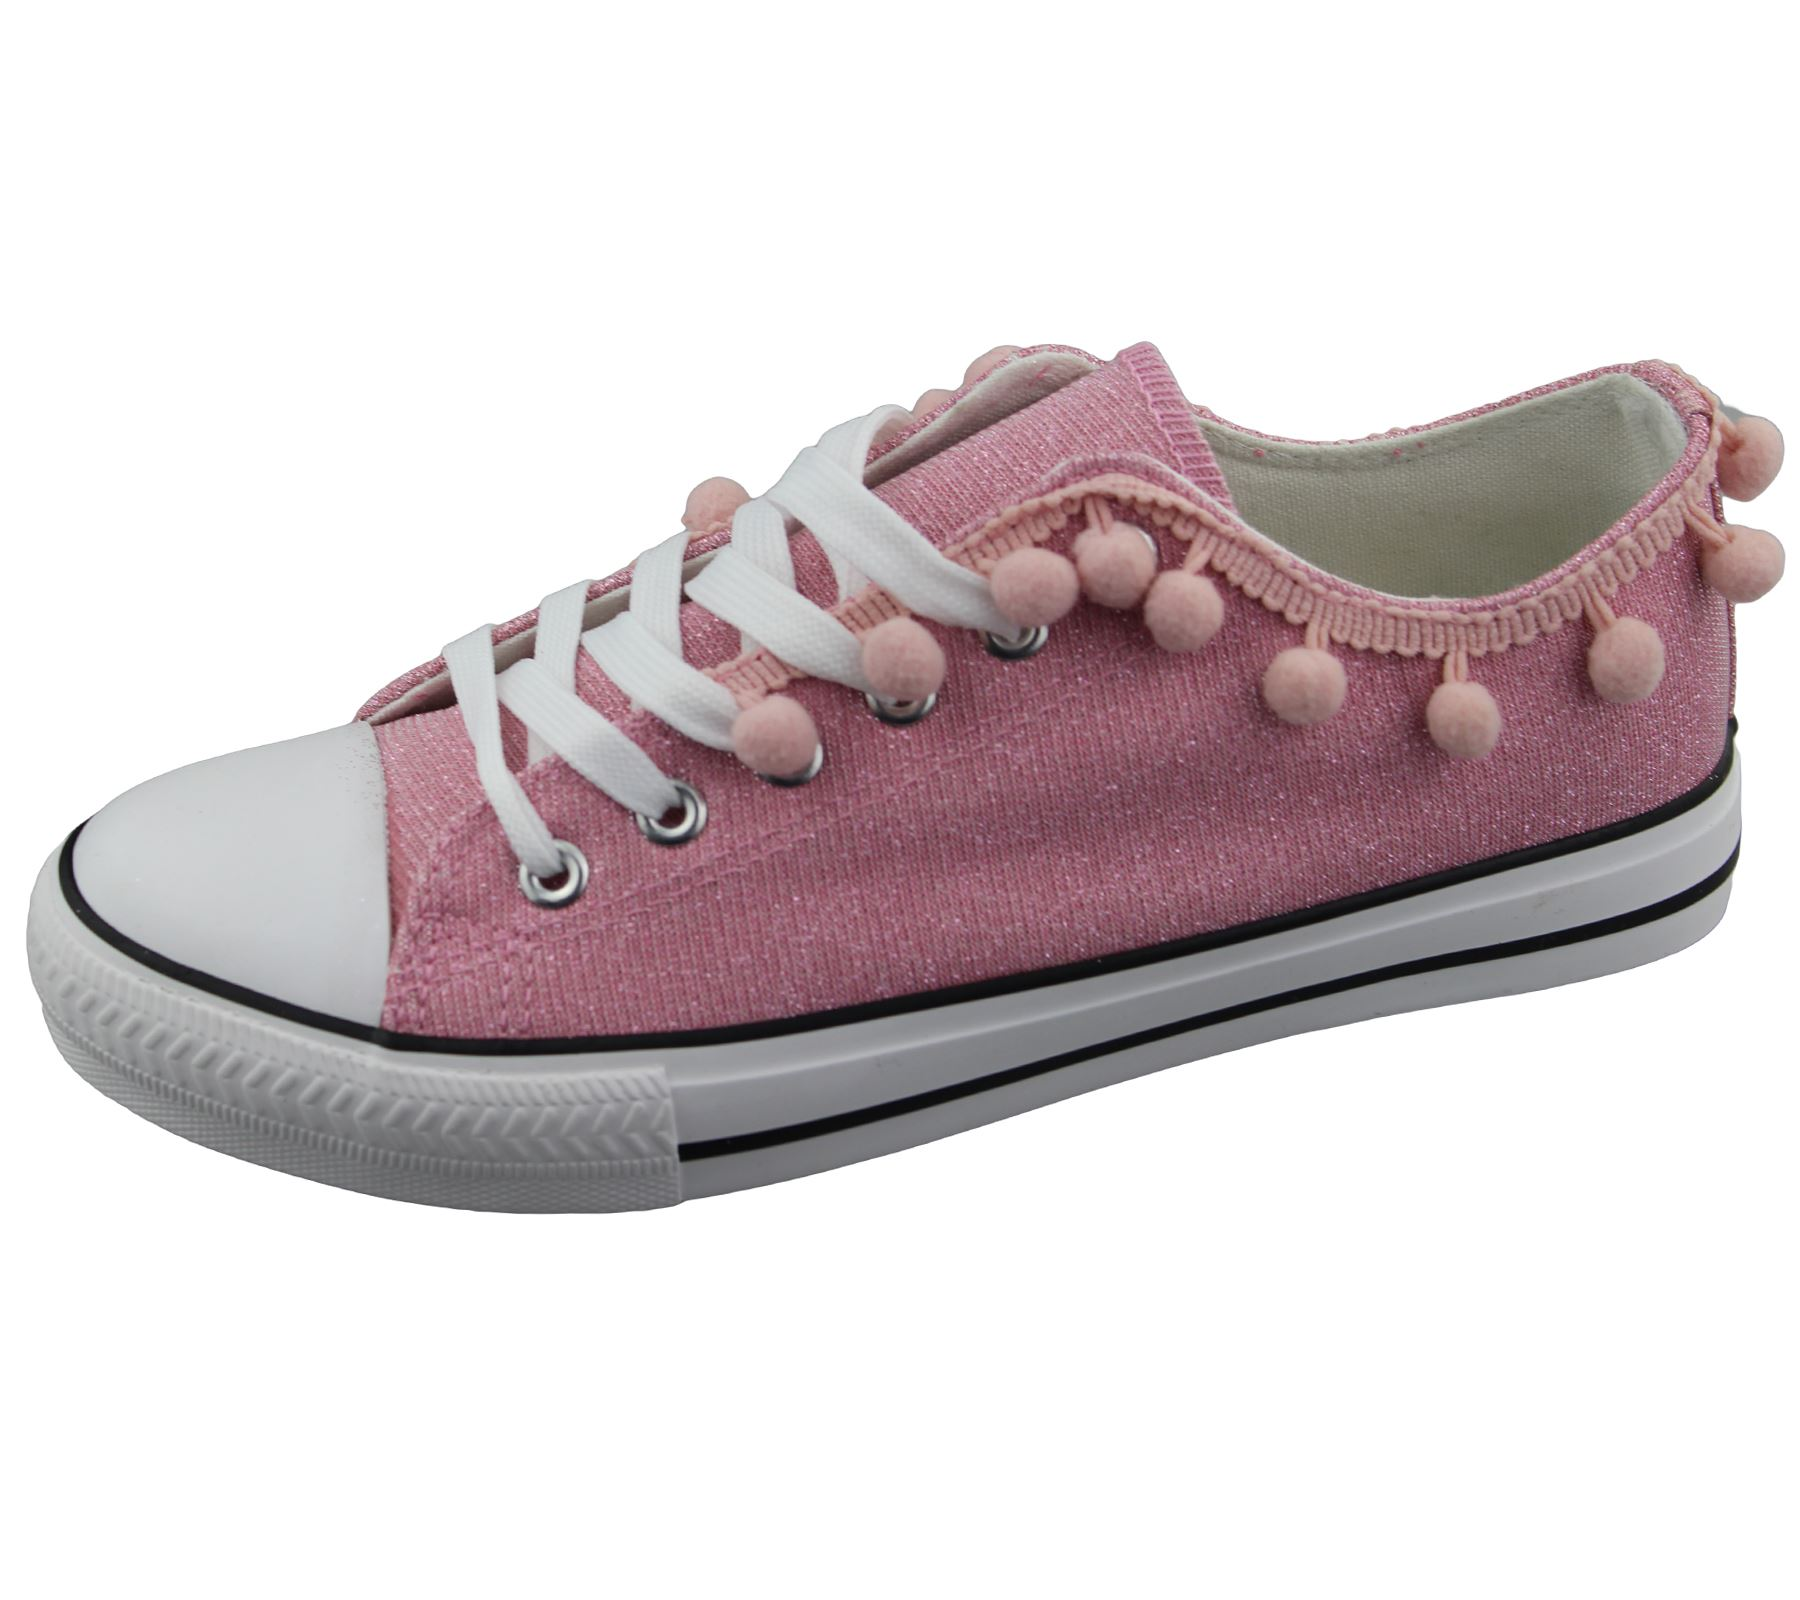 Womens-Sneakers-Flat-Pumps-Ladies-Glittered-Summer-Plimsole-Canvas-Shoes thumbnail 39